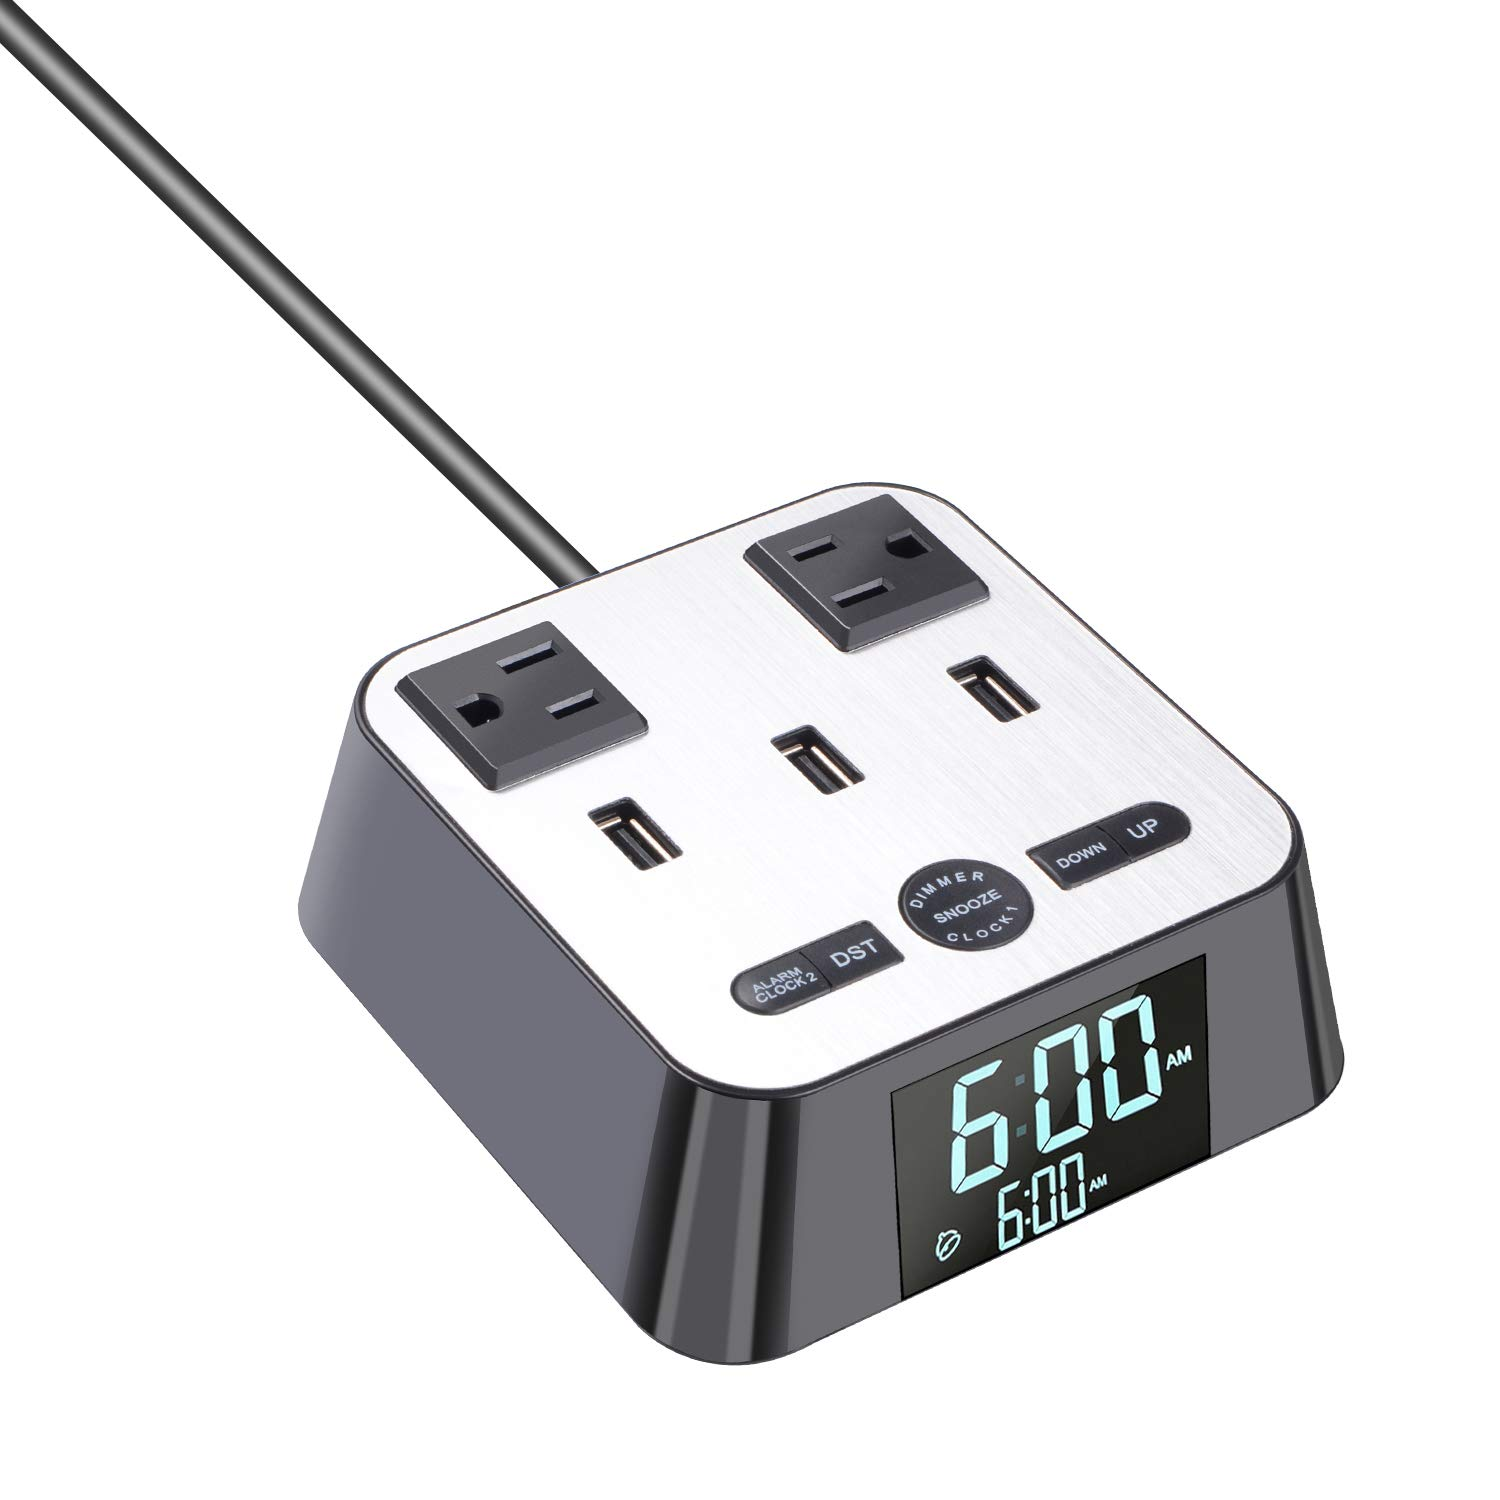 Yostyle Alarm Clock Charger with 3 USB Ports and 2 Power Sockets Outlets 6ft Power Cord Charging Station (Display Dimmer,Snooze Function, Independent Switch,DST Time)